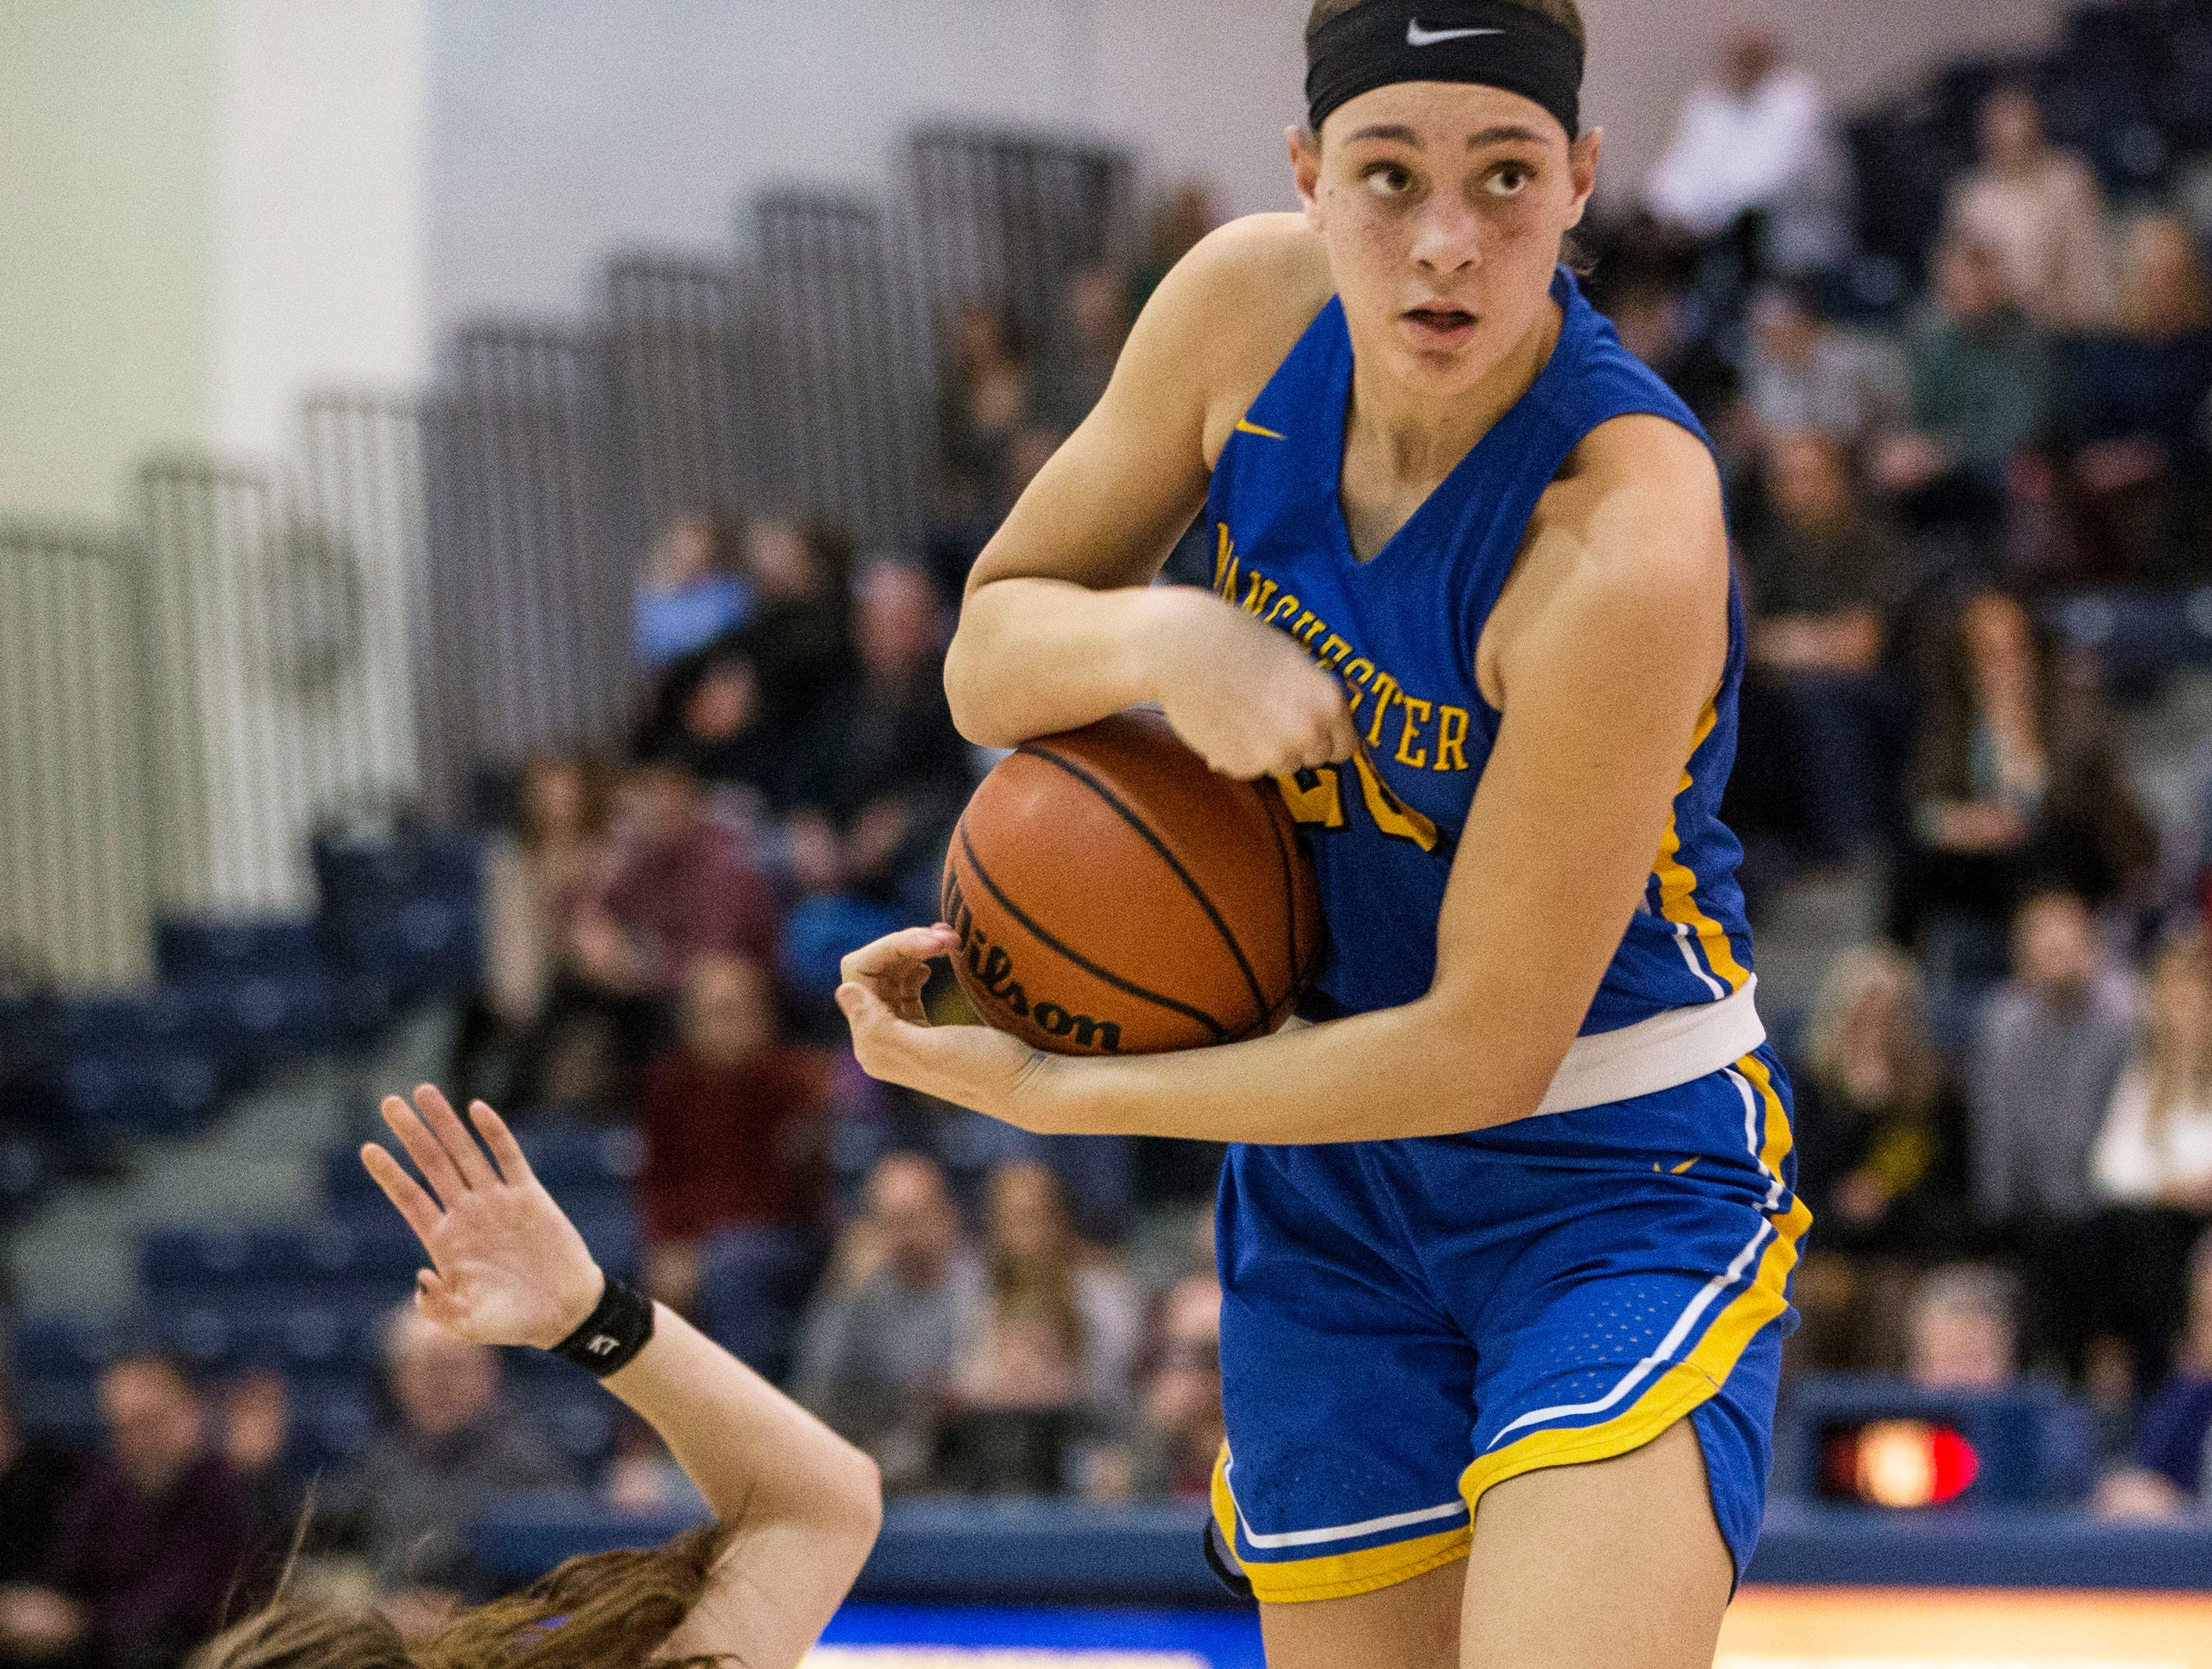 Shore Conference Tournament semifinals featuring St. Rose vs Manchester. Manchester's Destiny Adams comes up with the ball as St. Rose's Brynn Farrell goes to the floor.Toms River, NJTuesday, February 19, 2019